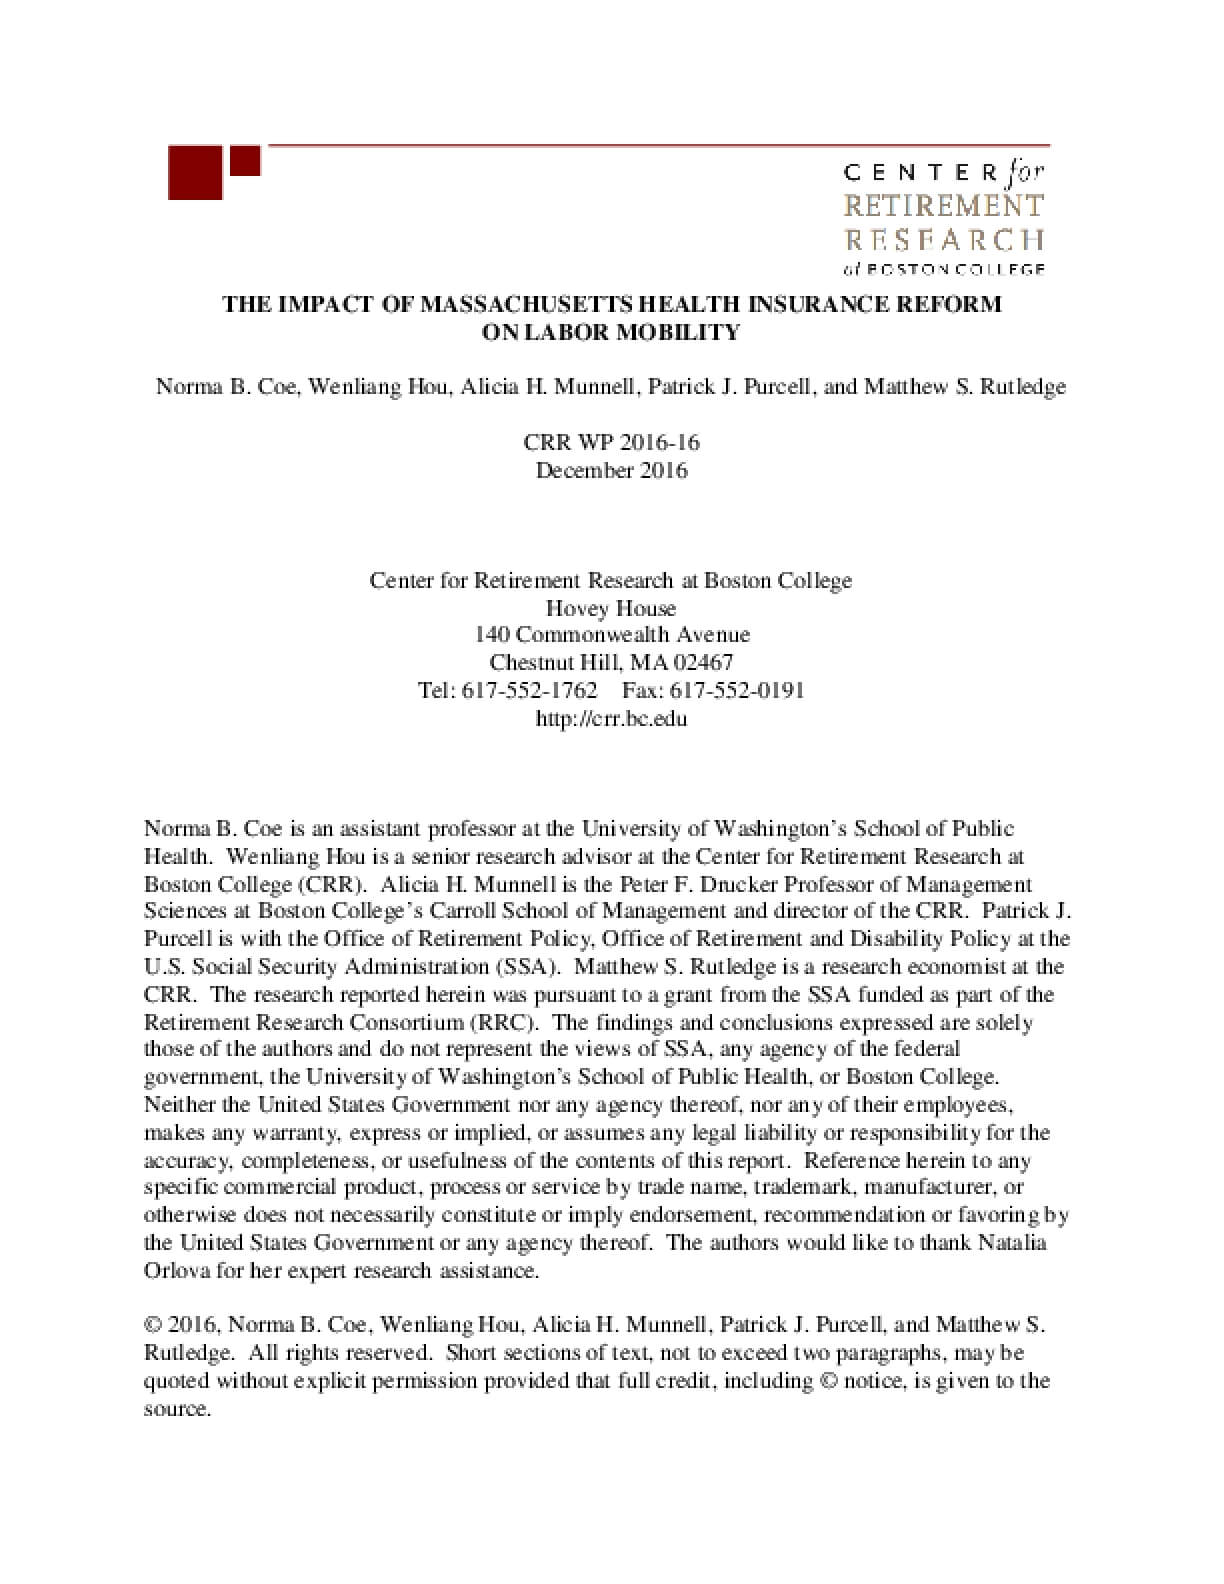 The Impact of Massachusetts Health Insurance Reform on Labor Mobility